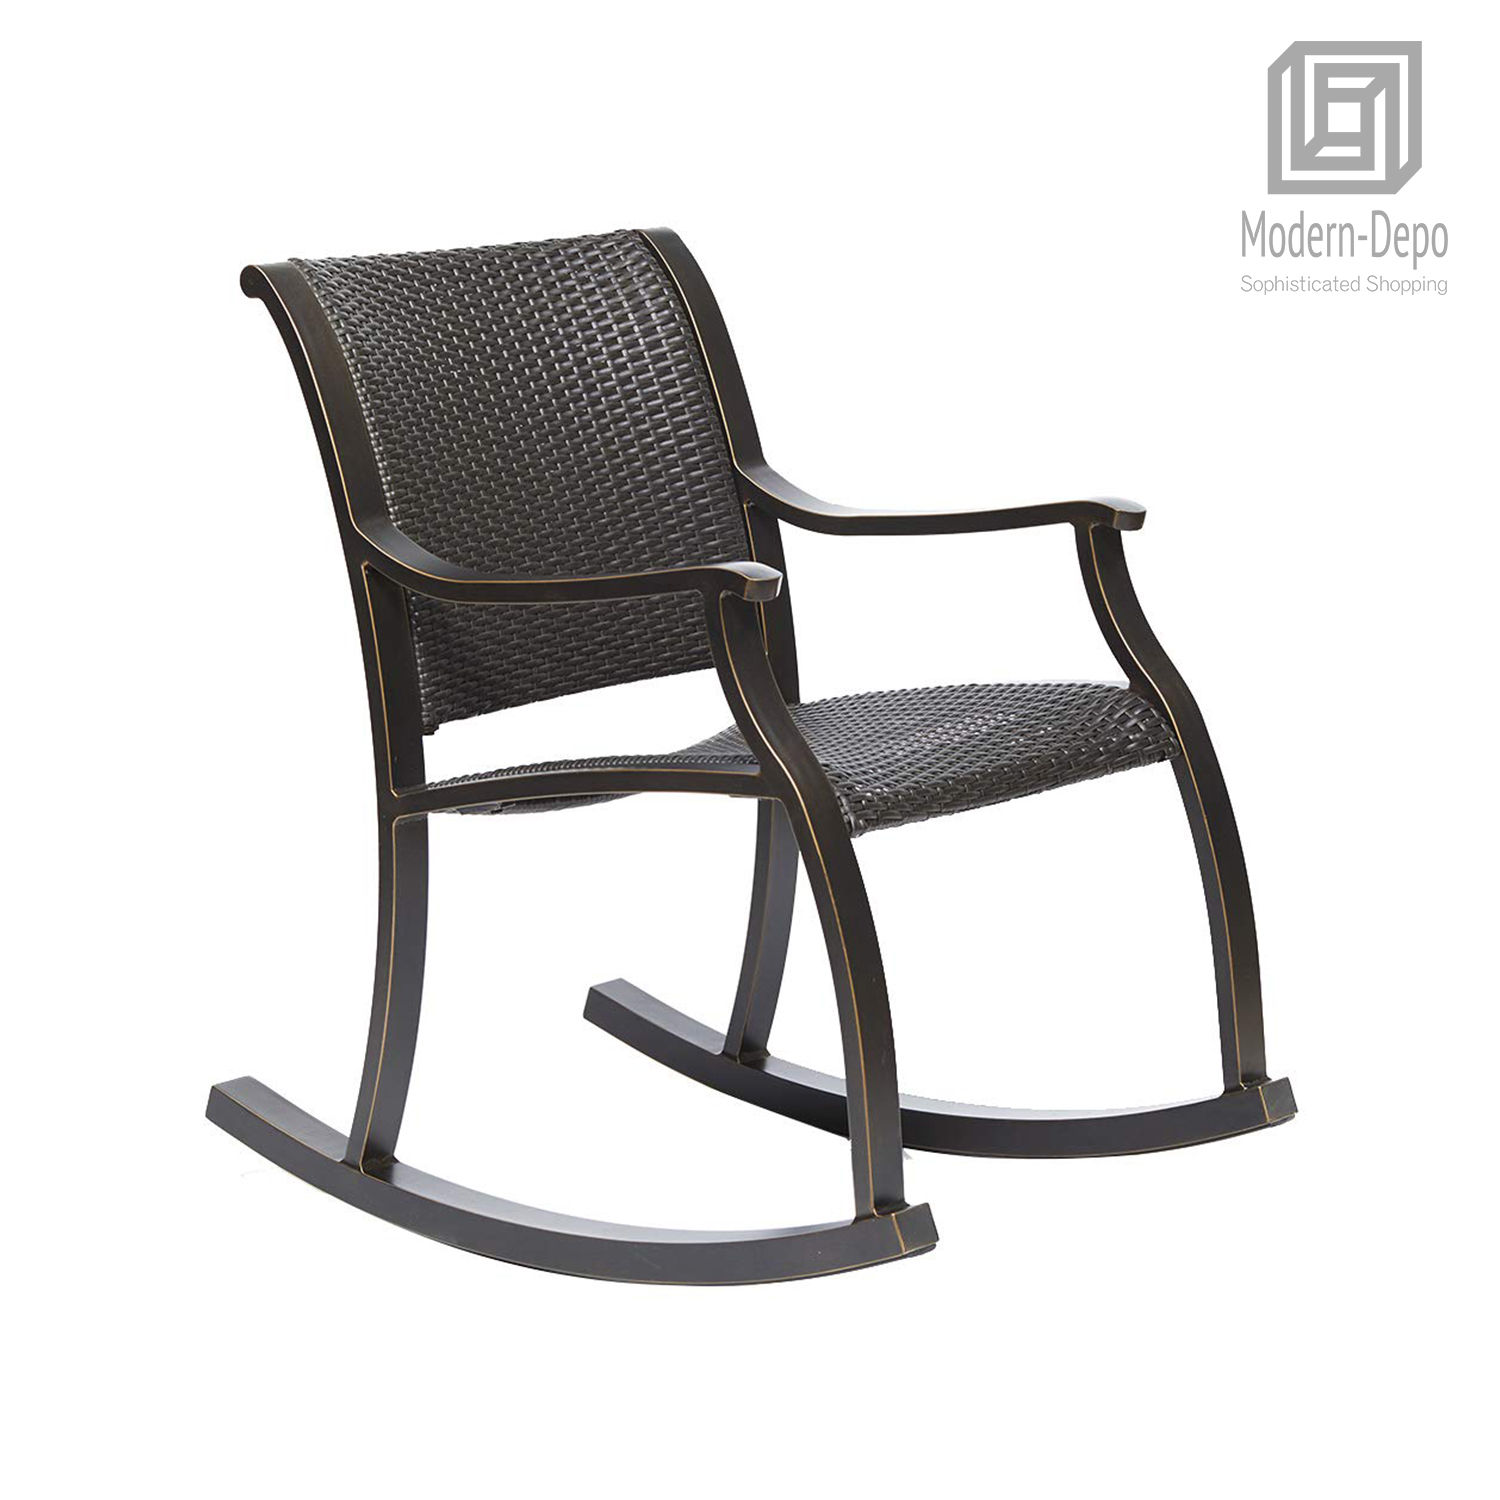 Black Wicker Rocking Chairs Details About Rattan Rocker Chair Weather Resistant Rocking Armchair Outdoor Patio Chair